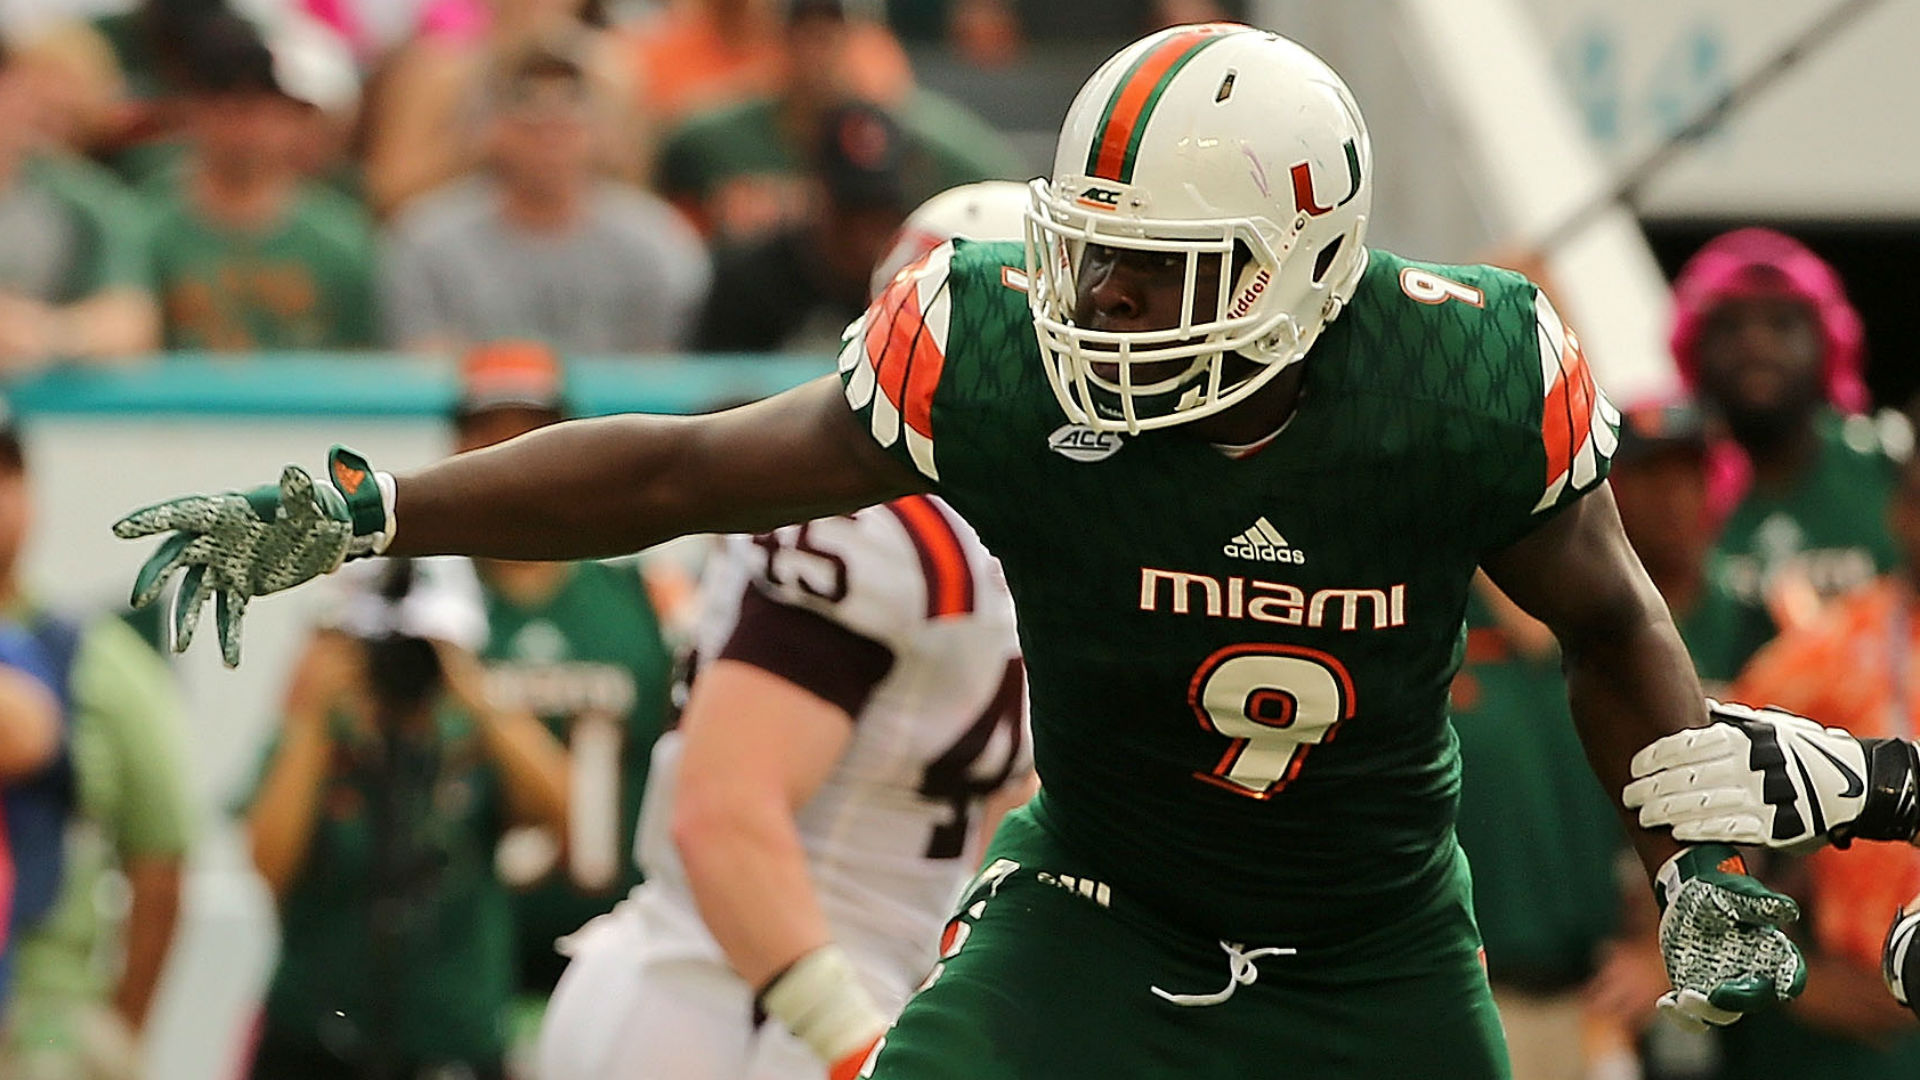 NFL Draft: Panthers' Marty Hurney among those scouting Miami-UVA